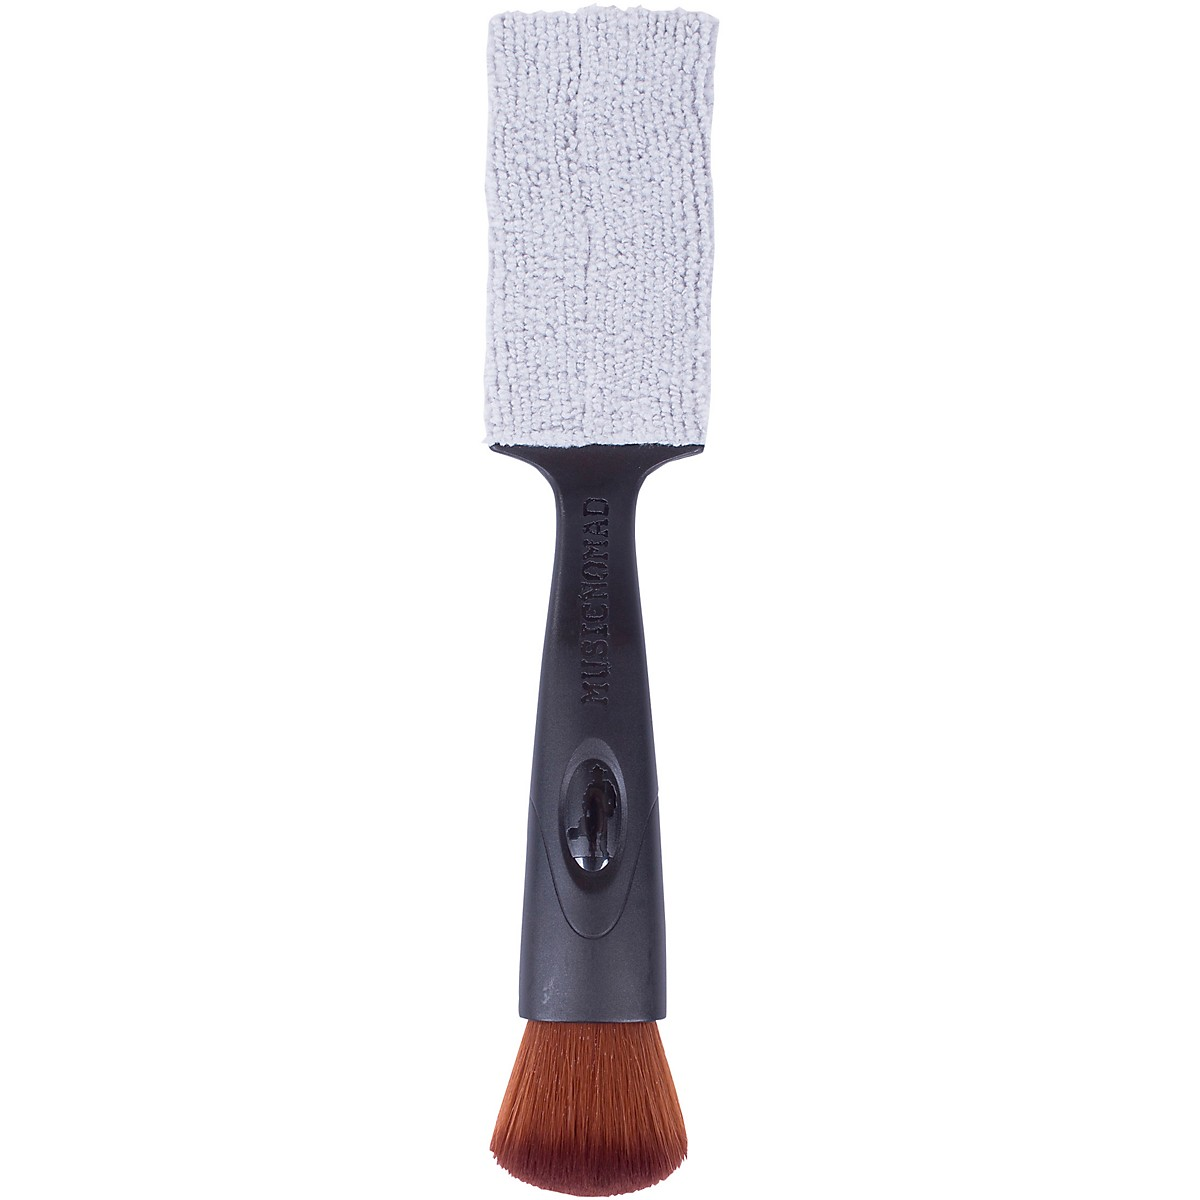 MusicNomad All in 1 String, Surface and Hardware Cleaning Tool